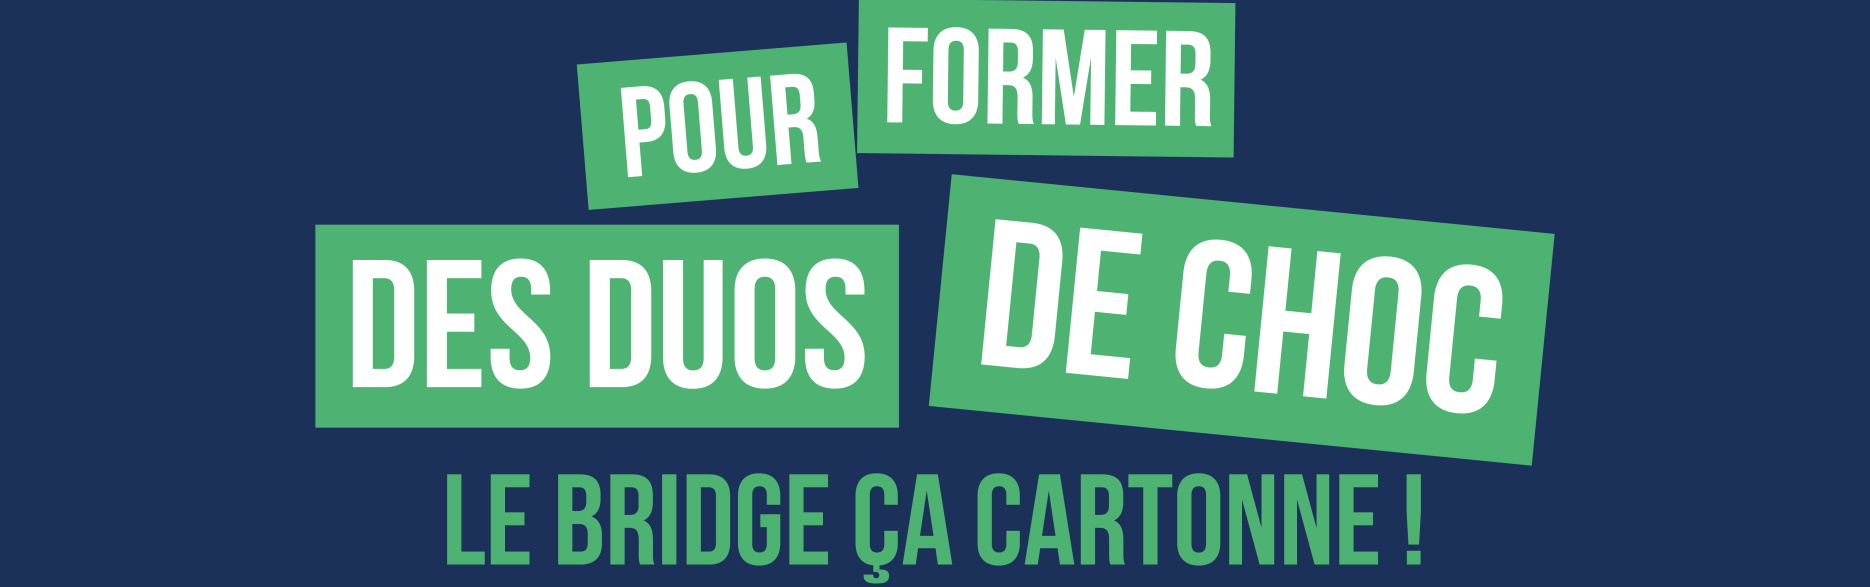 Header générique le bridge ca cartonne.jpg